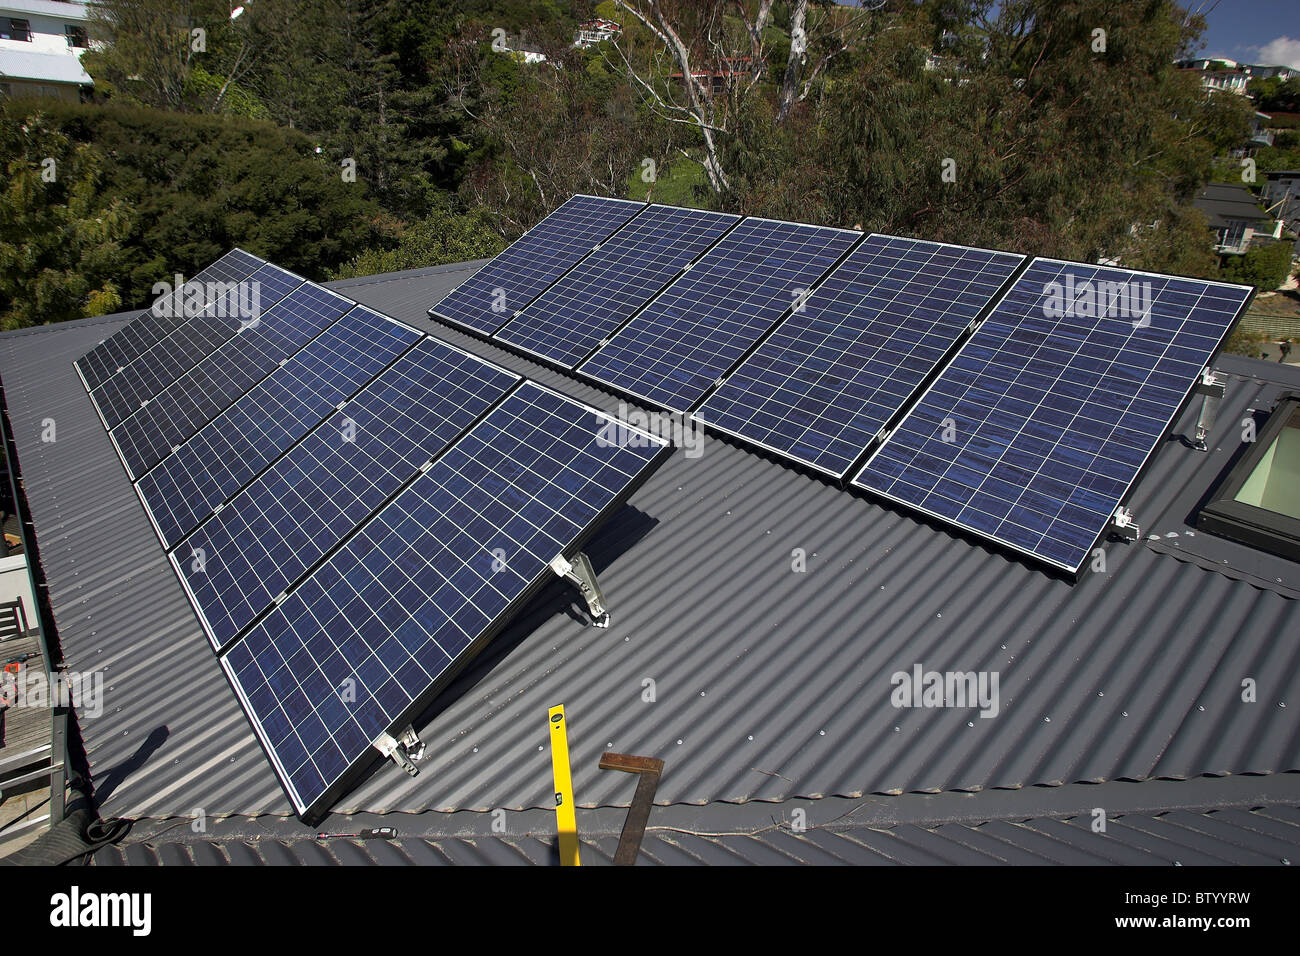 Photovoltaic solar panels on a house in Nelson, the city with New Zealand's highest sunshine hours - Stock Image